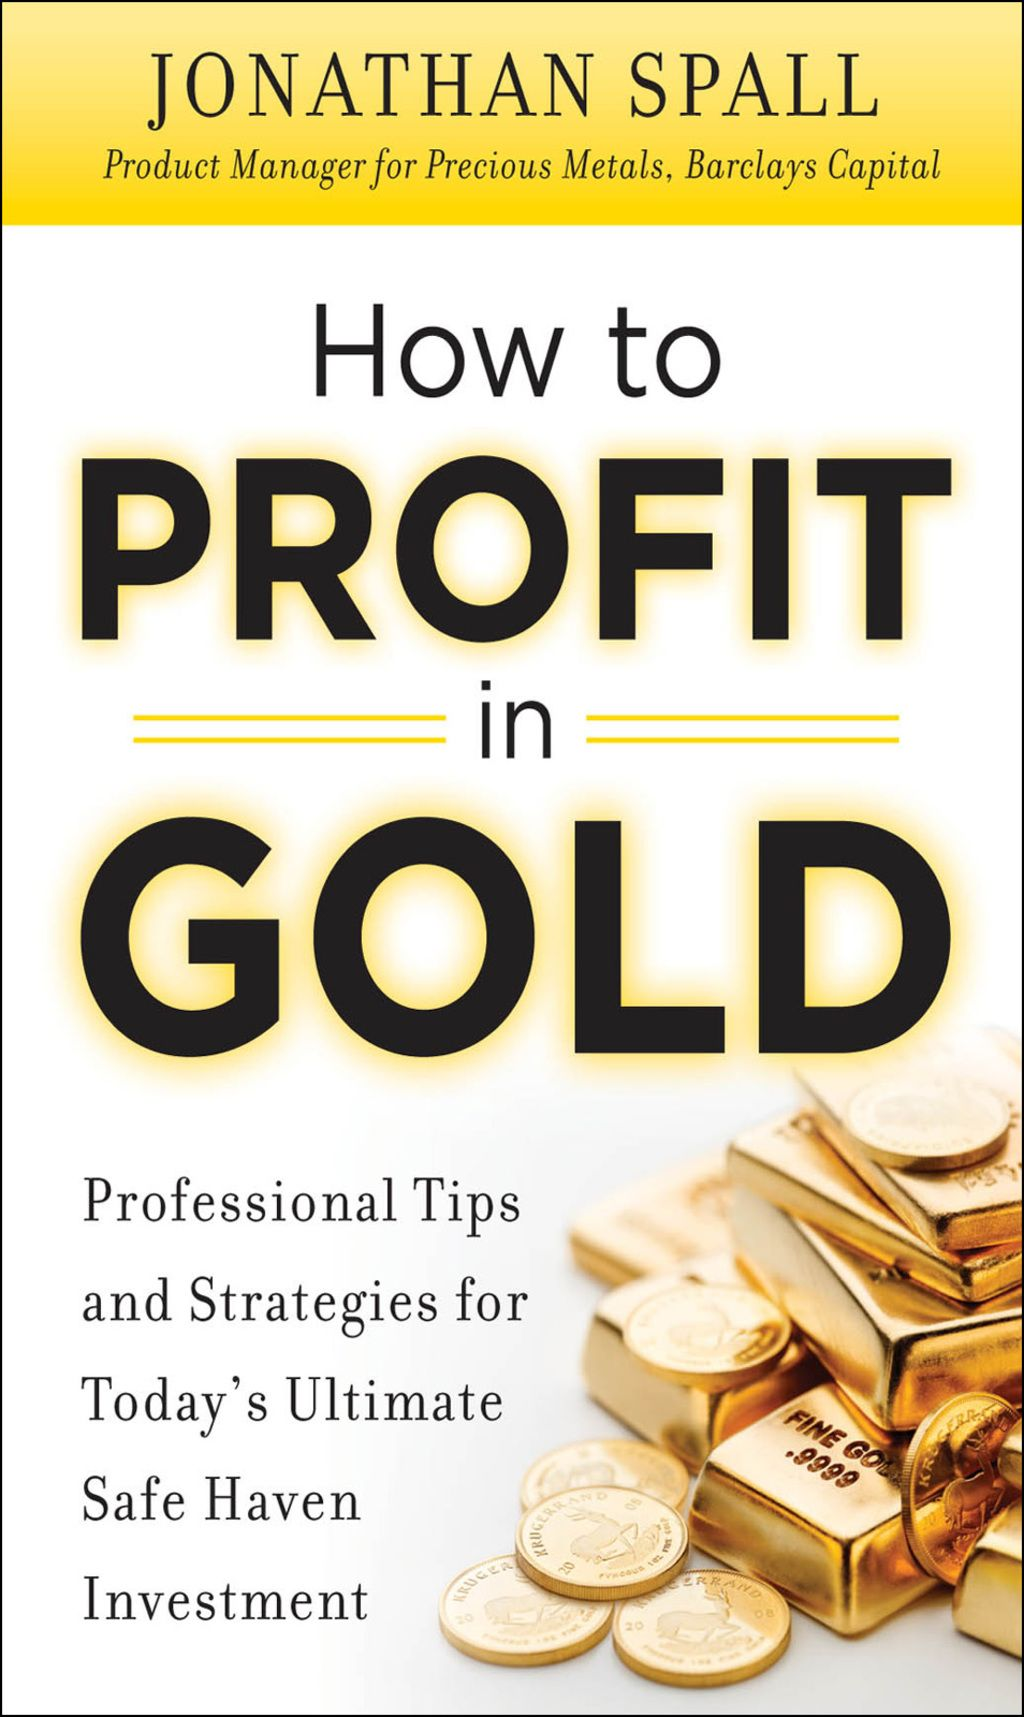 How to Profit in Gold Professional Tips and Strategies